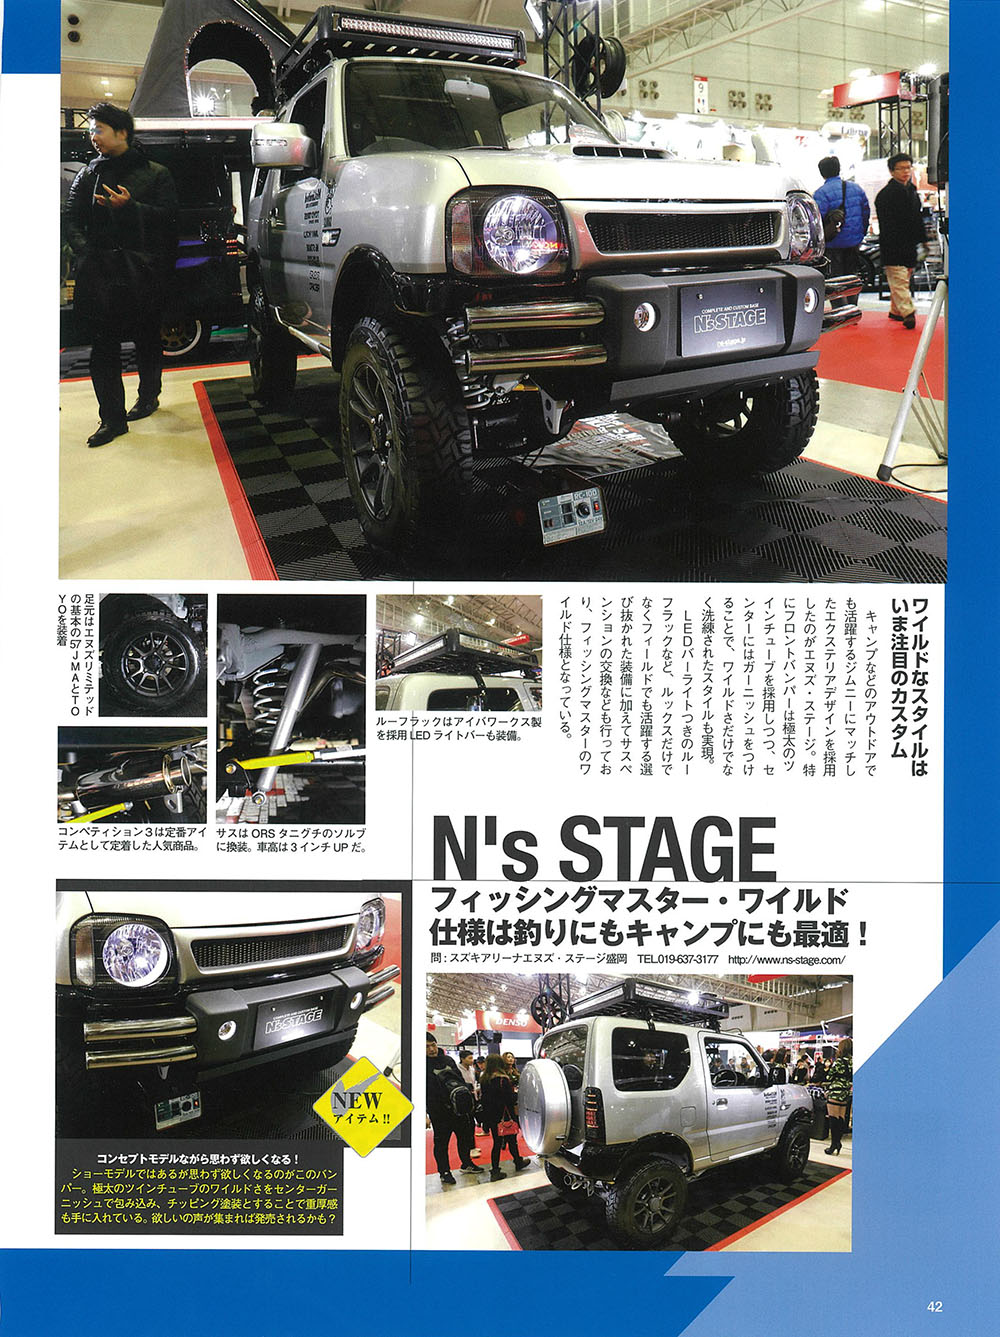 http://www.ns-stage.com/publication/JP3-3.jpg